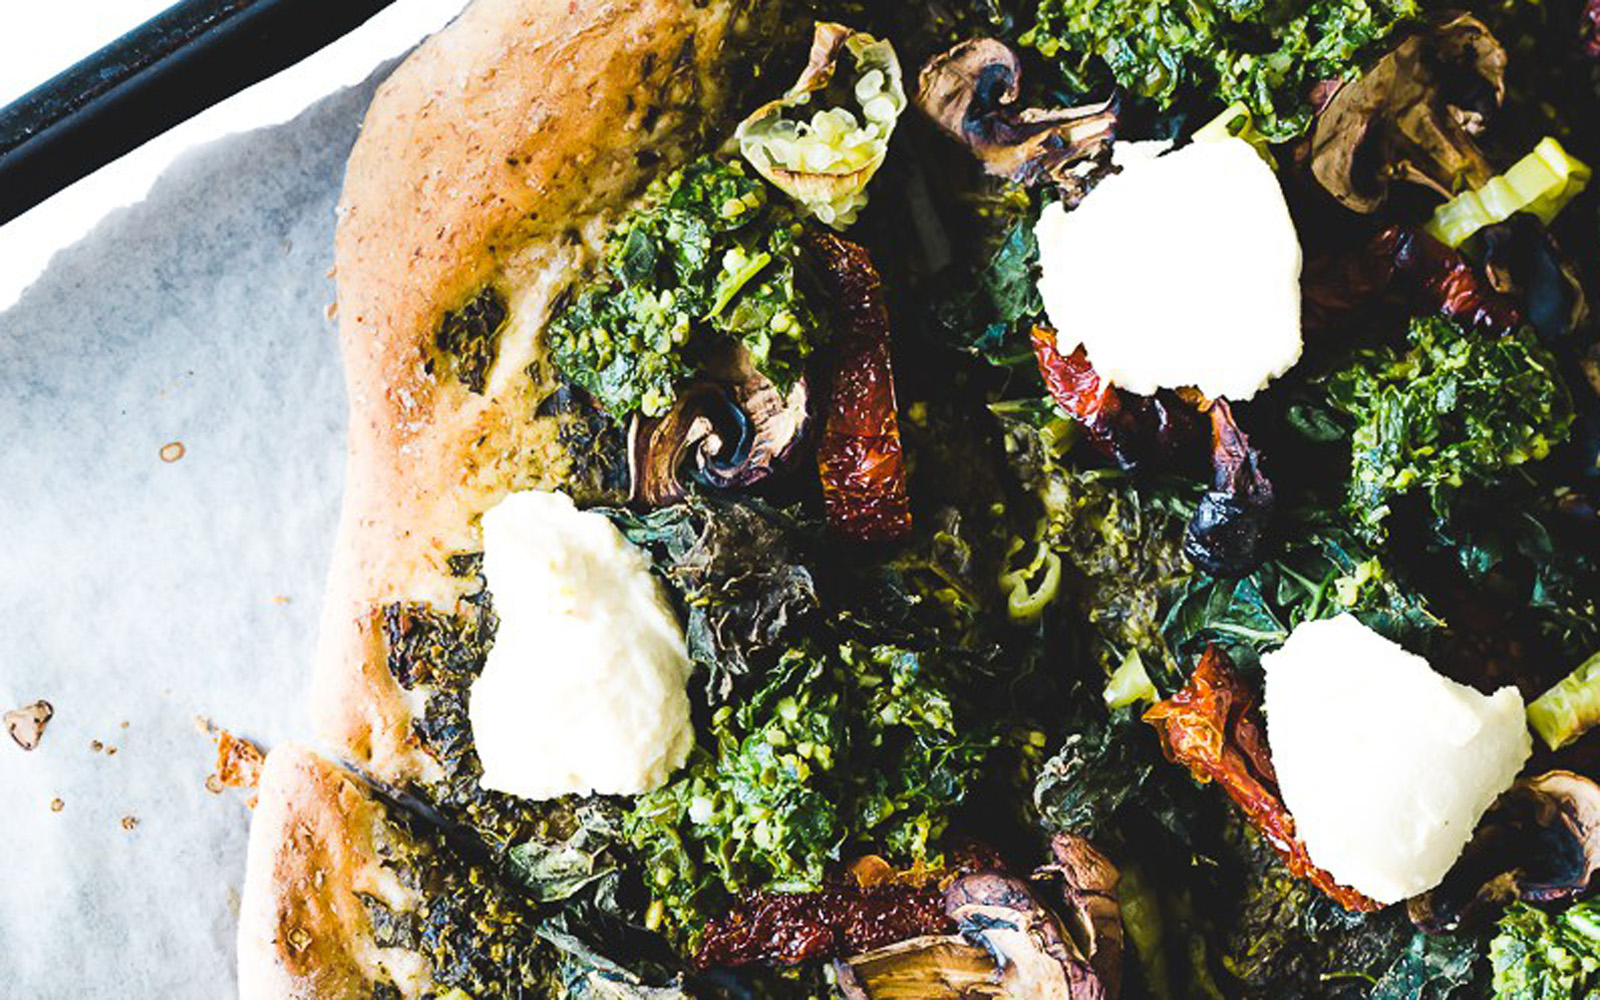 Vegan Kale Pesto Pizza With 'Goat' Cheese